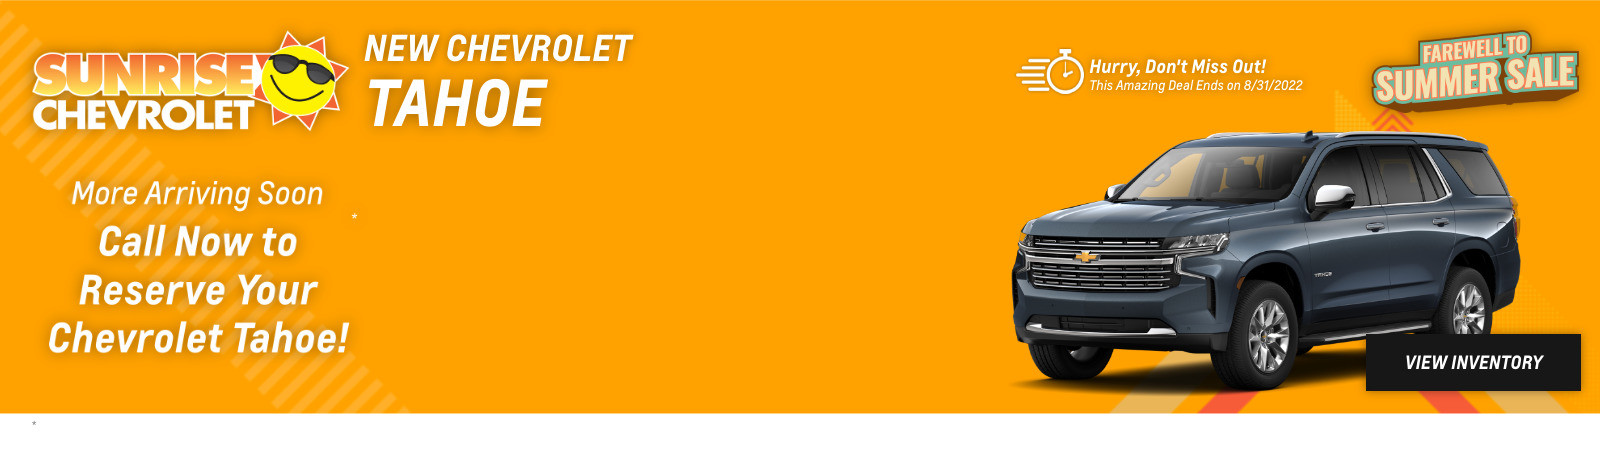 New Chevrolet Tahoe Current Deals and Offers in Chicago, IL